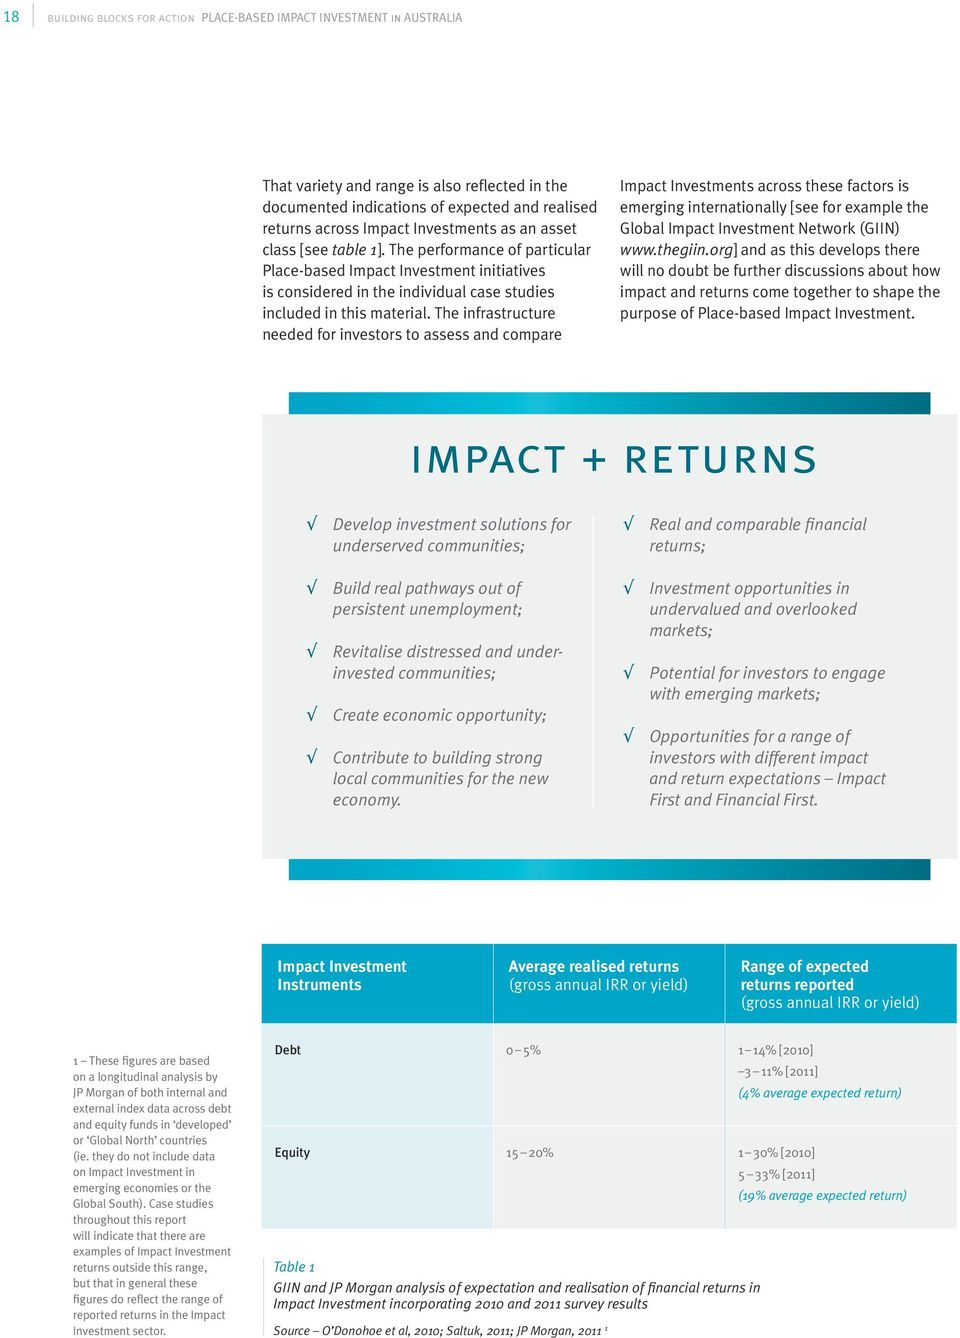 The infrastructure needed for investors to assess and compare Impact Investments across these factors is emerging internationally [see for example the Global Impact Investment Network (GIIN) www.